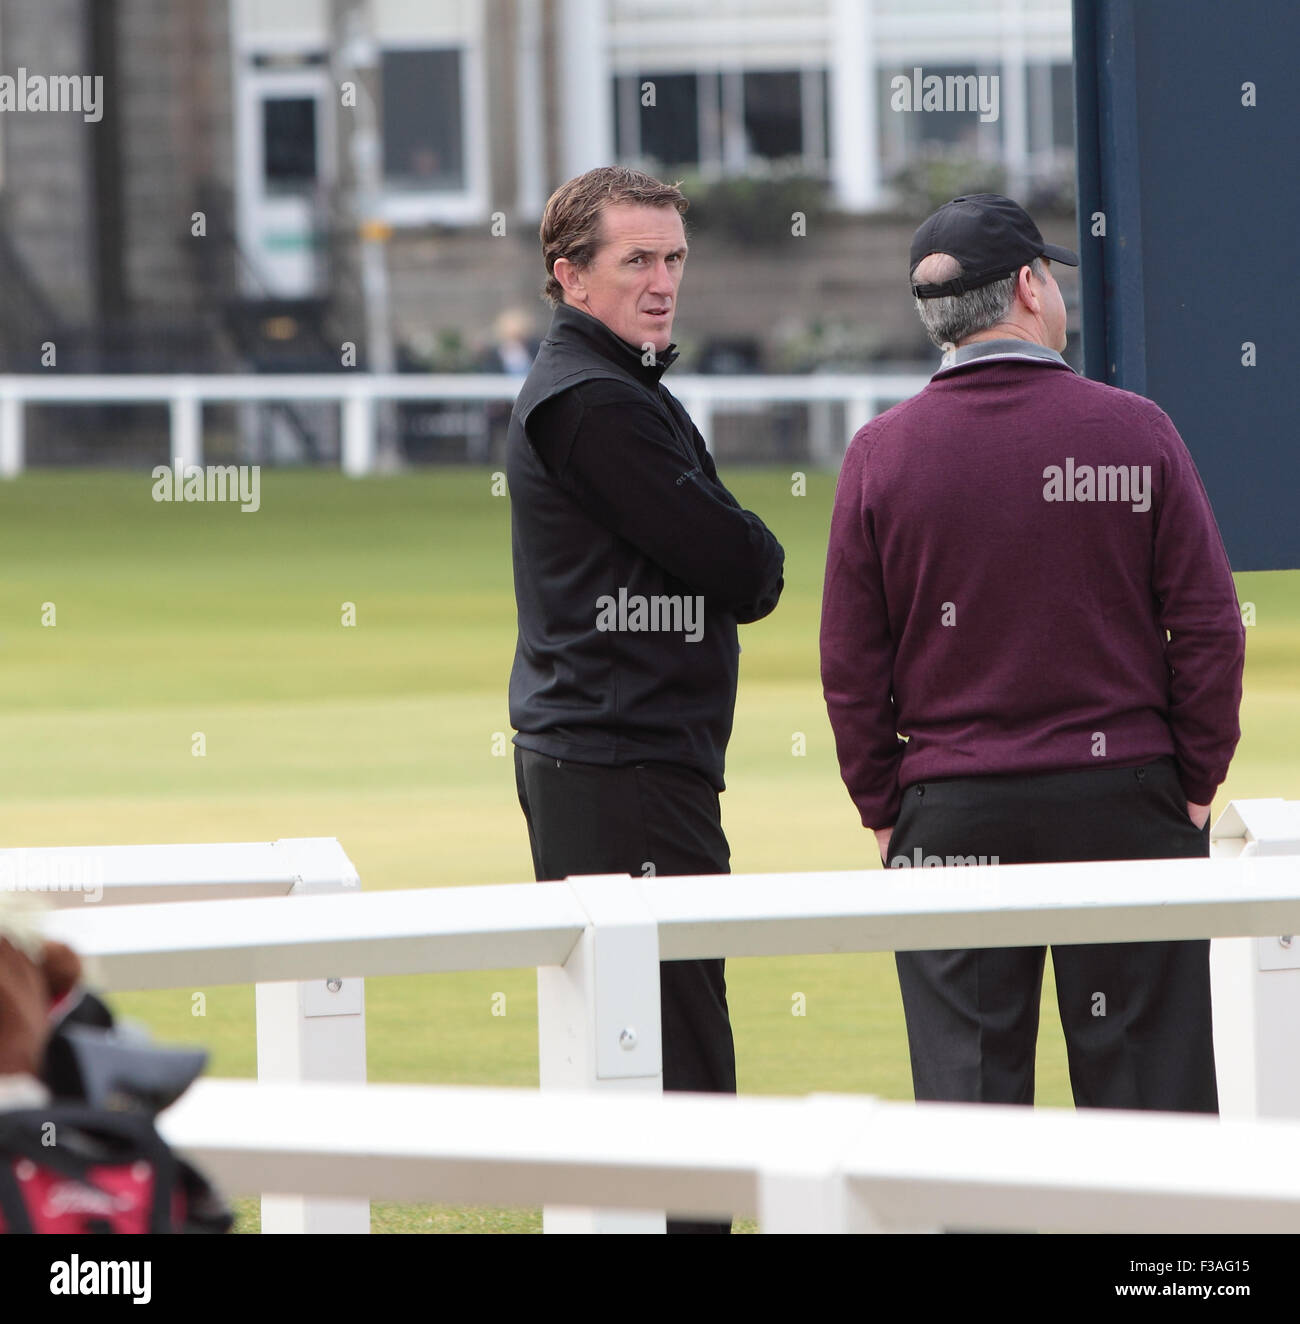 Fife, Scotland, UK. 2nd October, 2015. AP MCCOY Plays the The Alfred Dunhill Links Championship 2015 Credit:  Derek - Stock Image